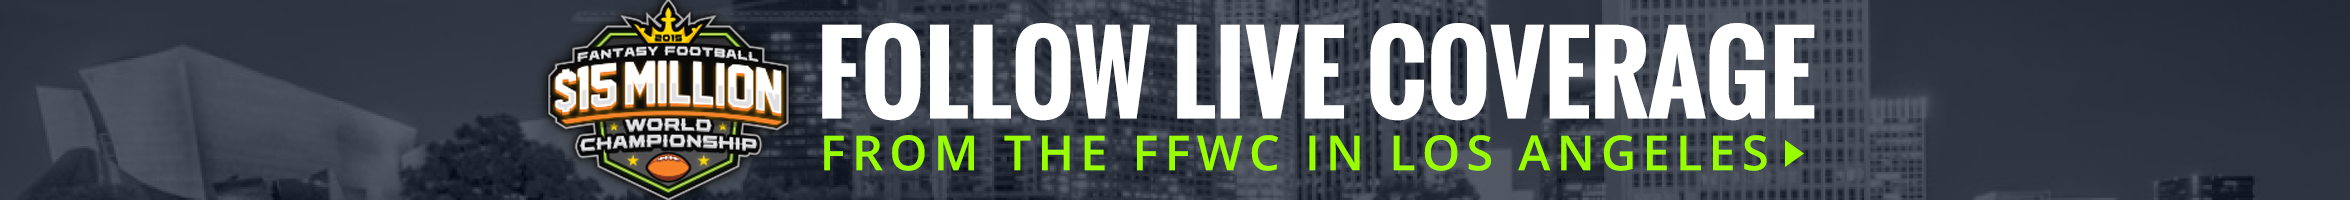 Live Coverage FFWC